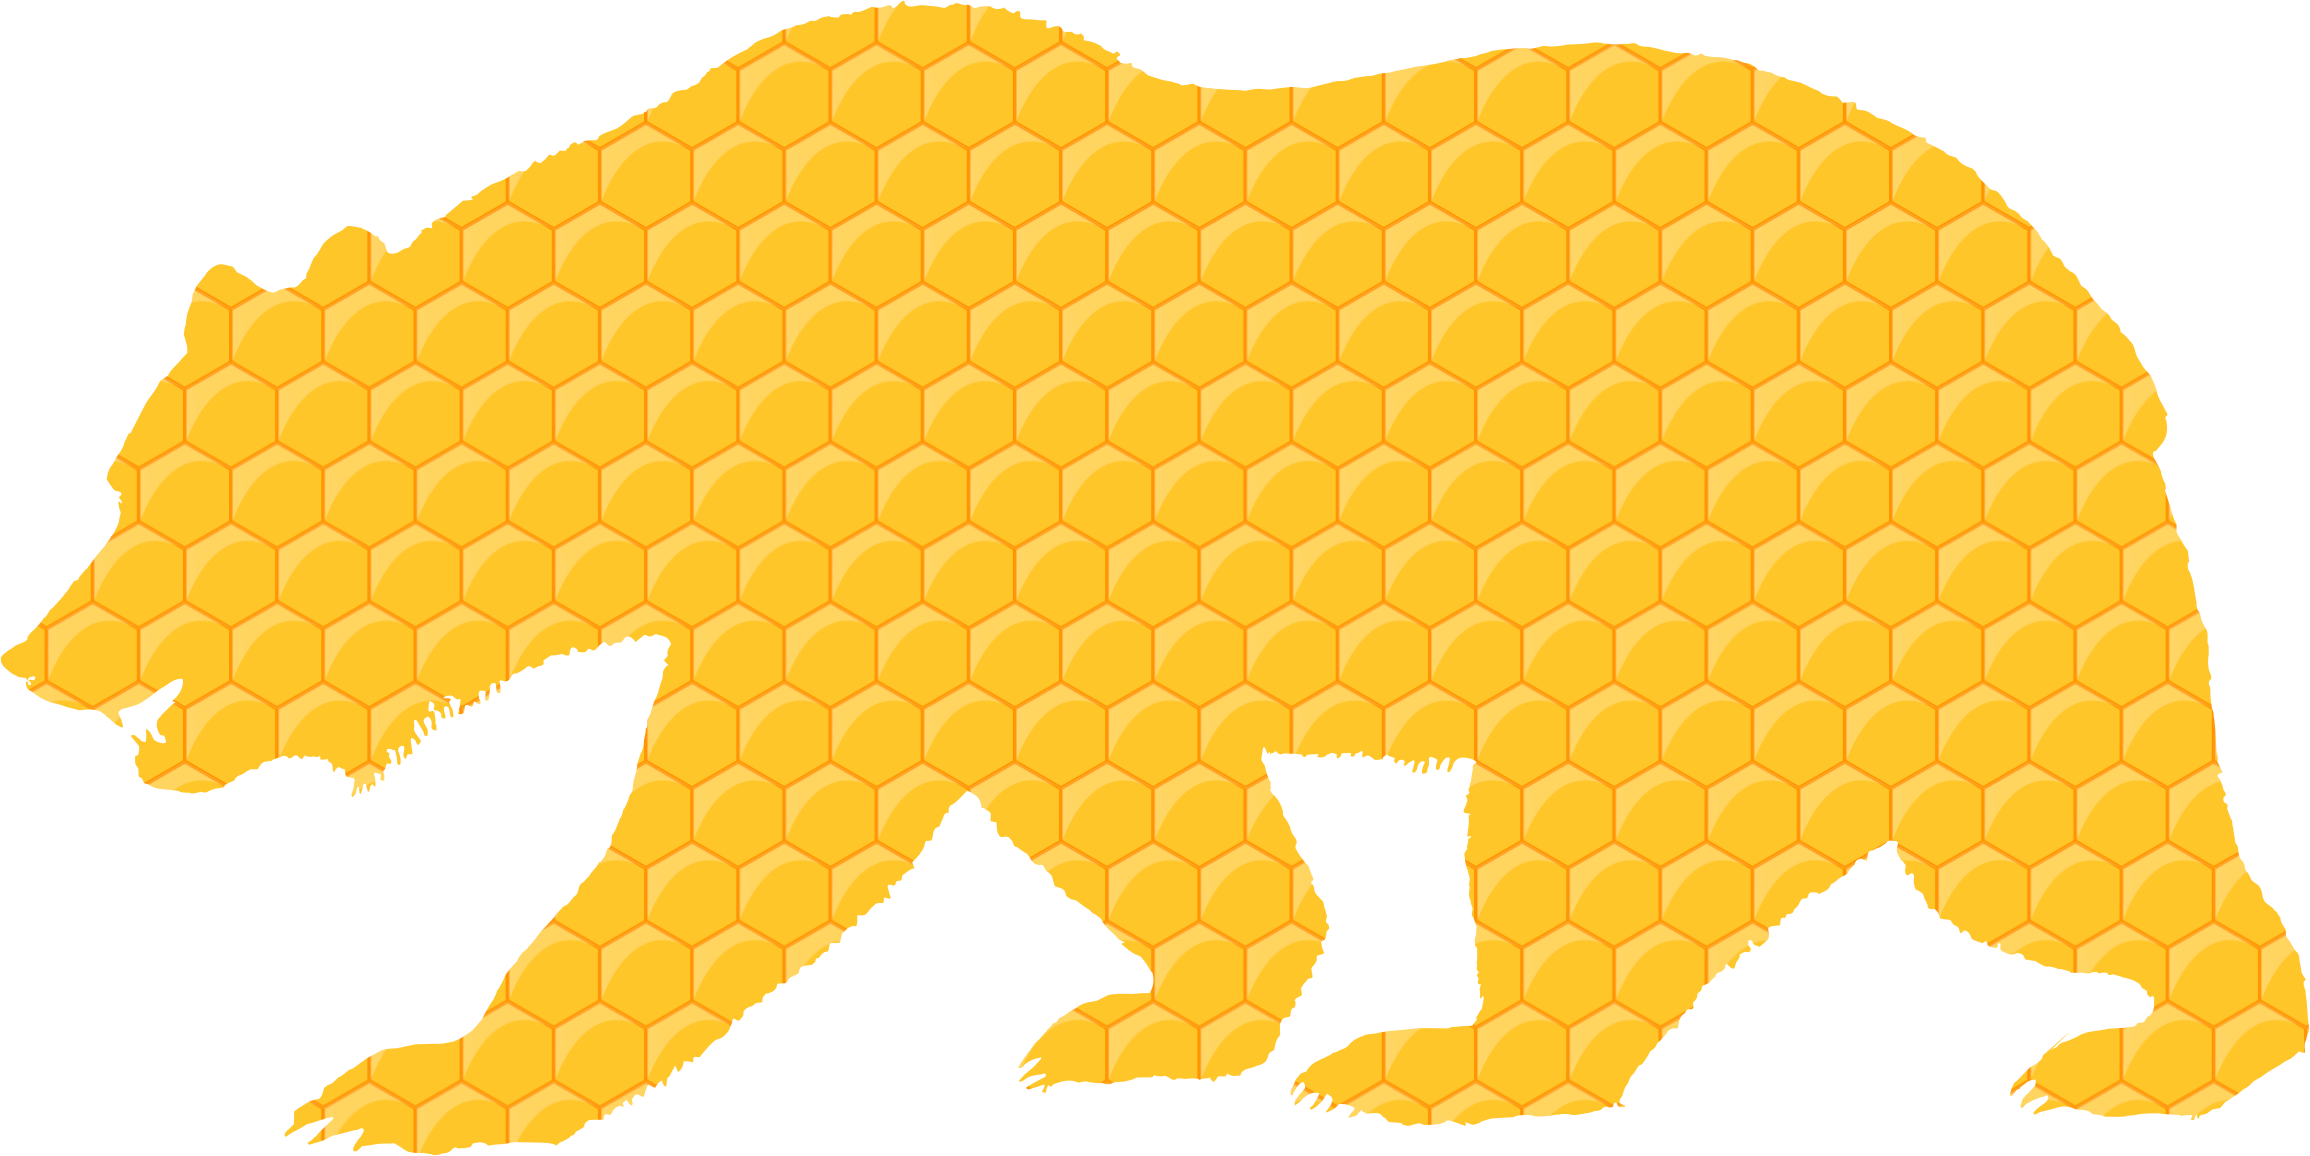 Honeycomb clipart honeycomb design. Bear icons png free